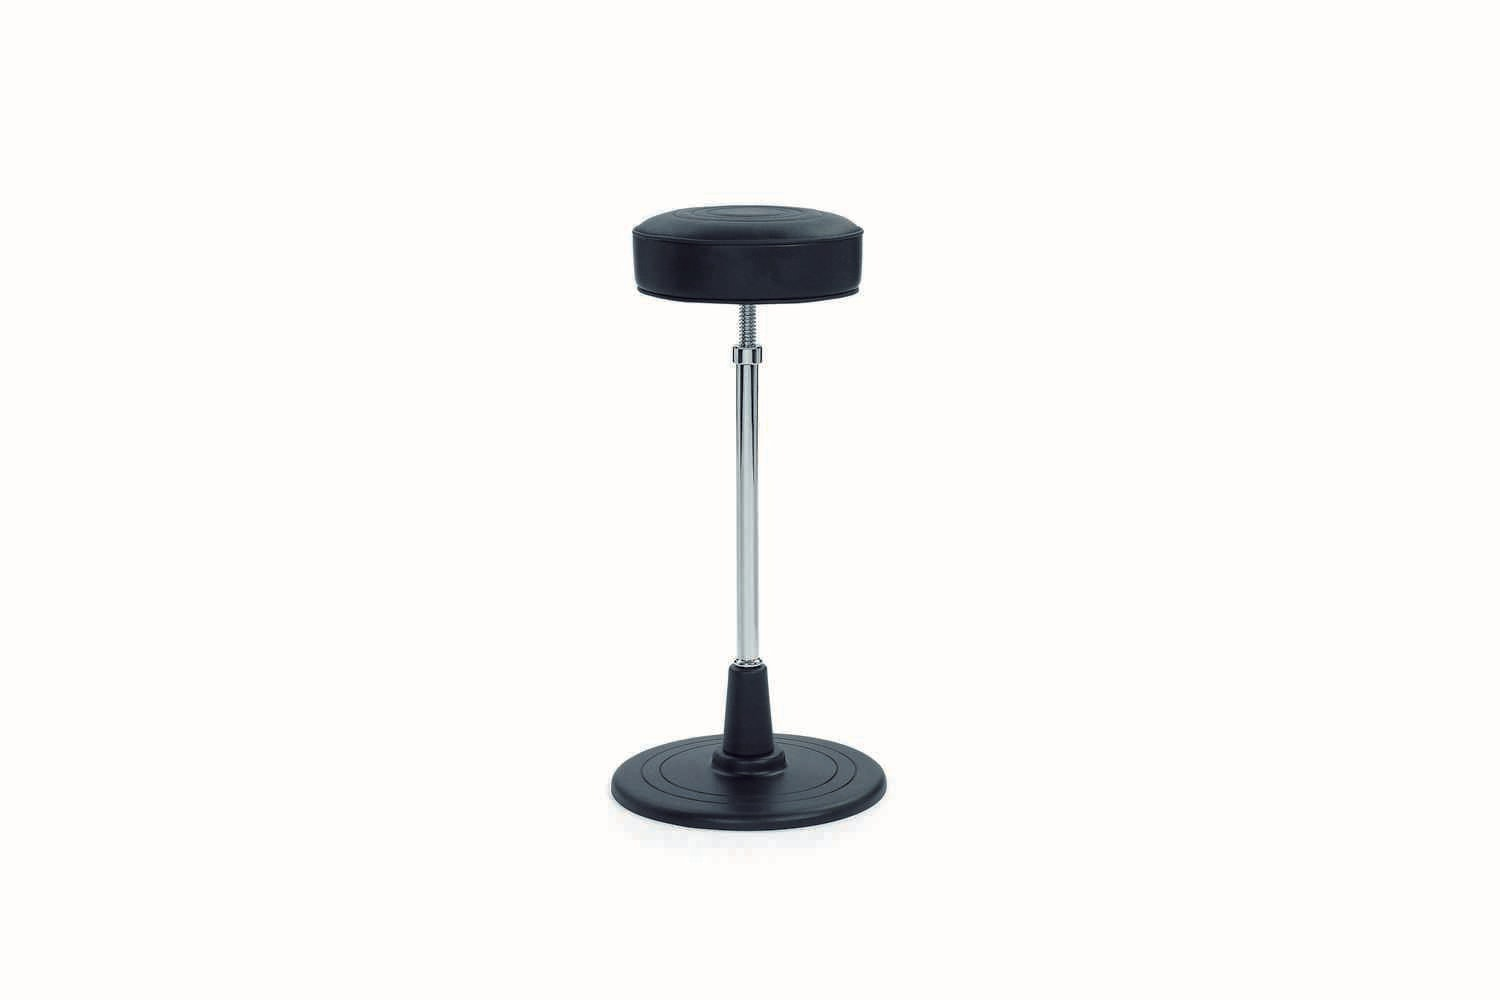 Bar Stool No. 1 by Eileen Gray for ClassiCon